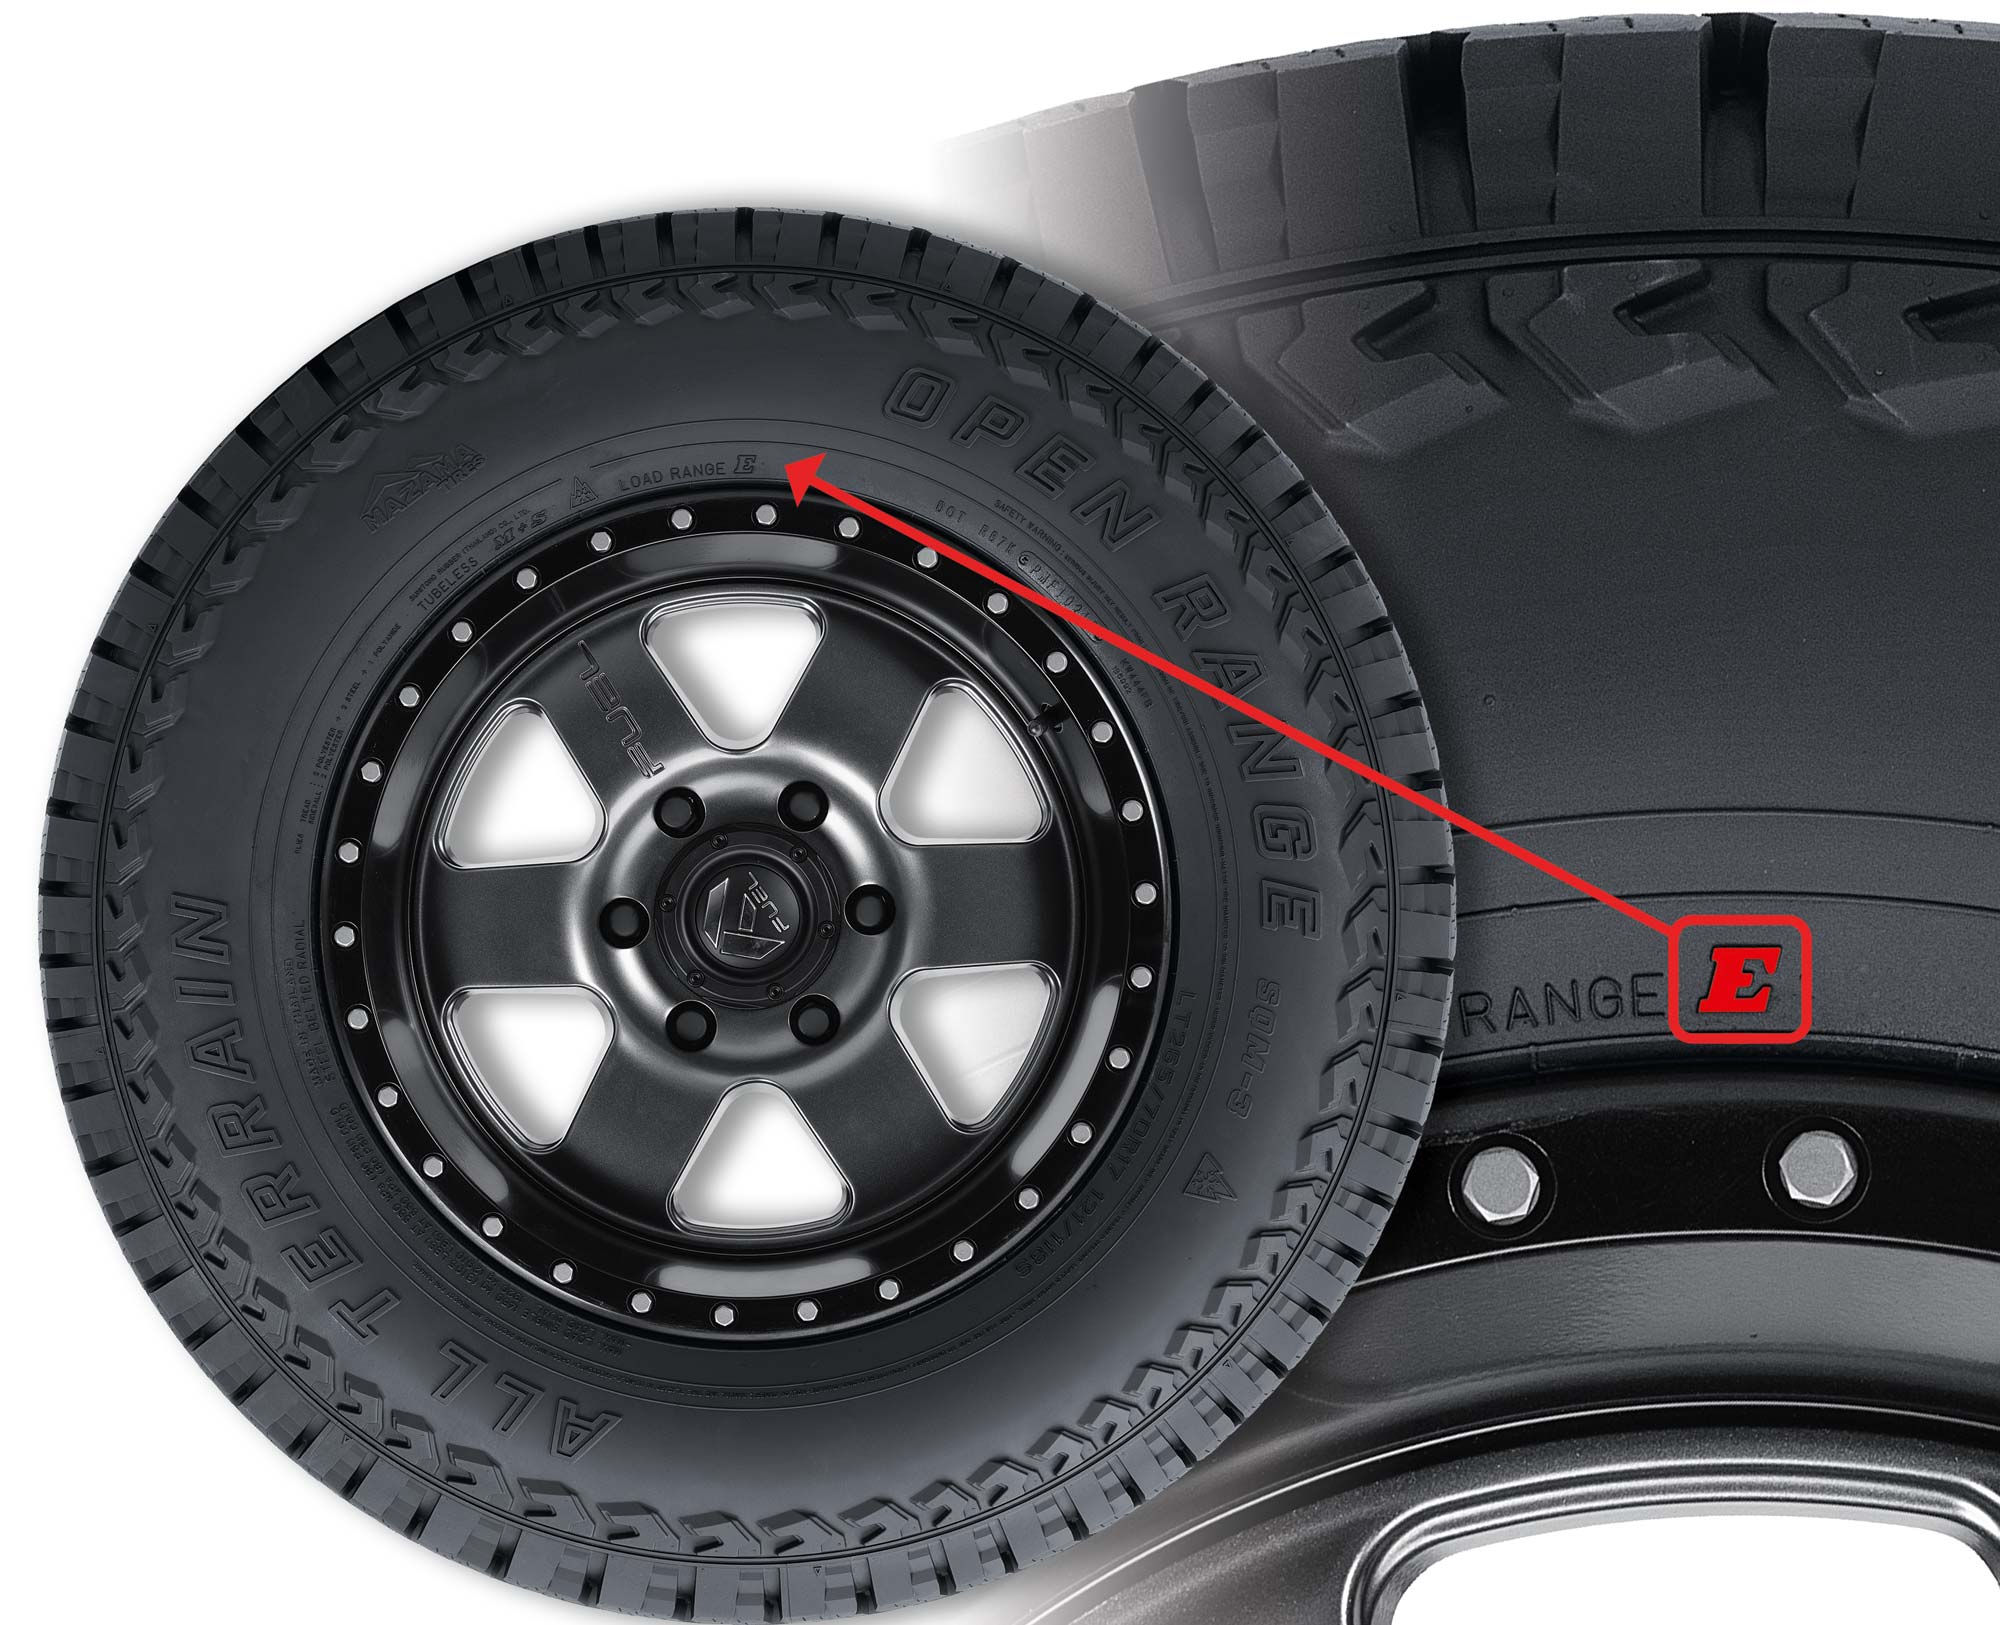 Photo showing where you can find the load range on the side of a tire.